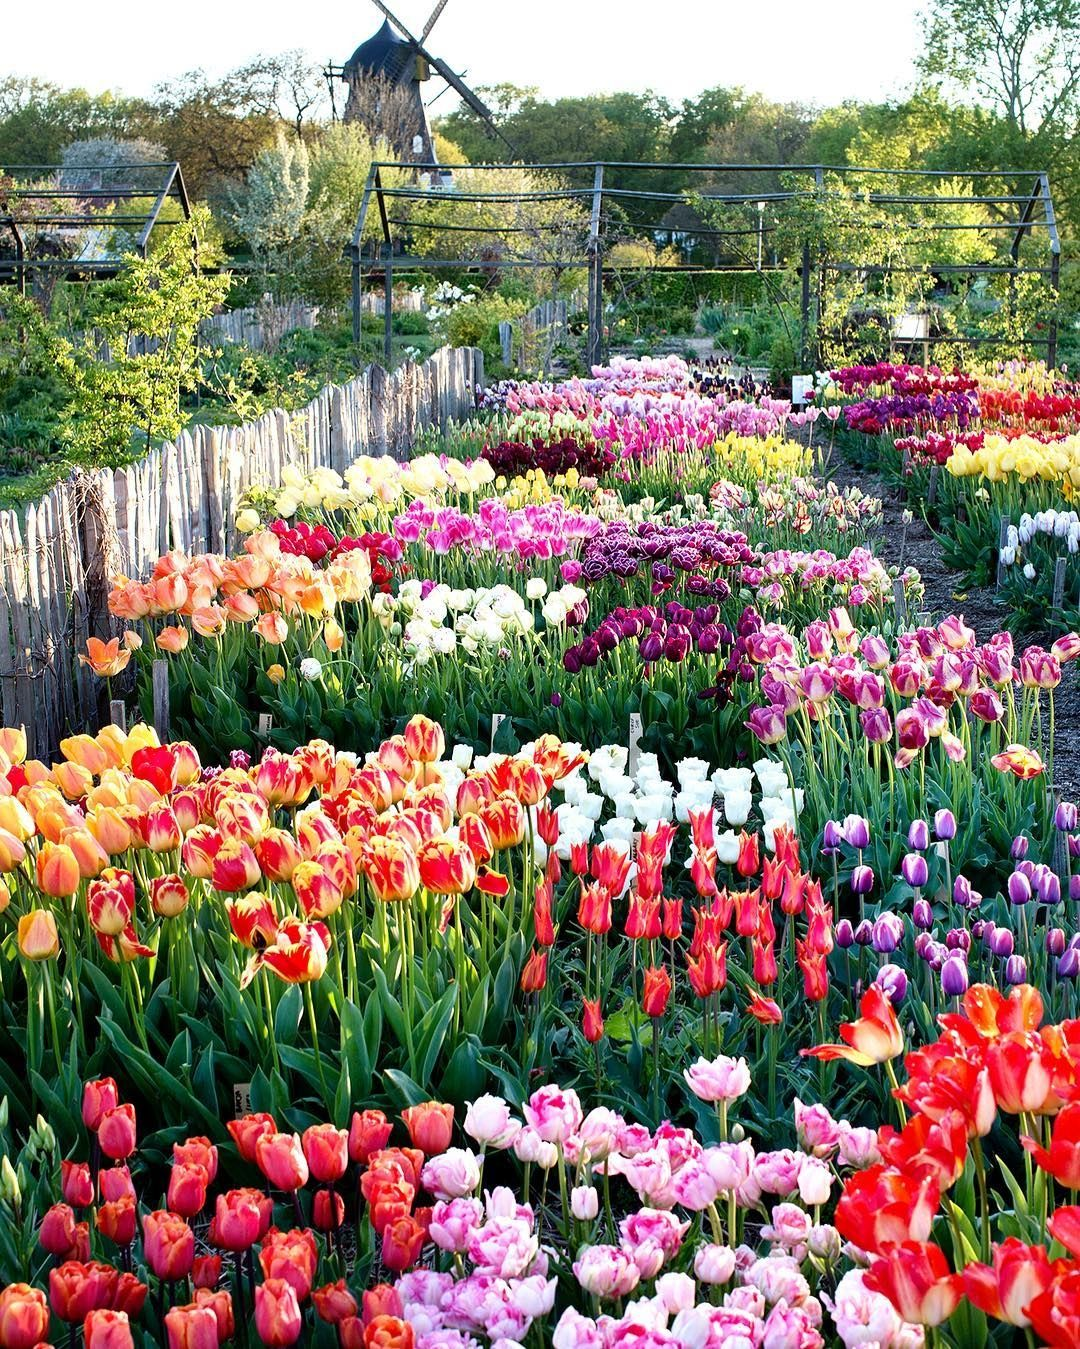 Reposting Country Living Tulips Galore Planted In Malmo Sweden Tulips Flowers Spring Pernilla Bergdahl Tulips Garden Plants Dream Garden